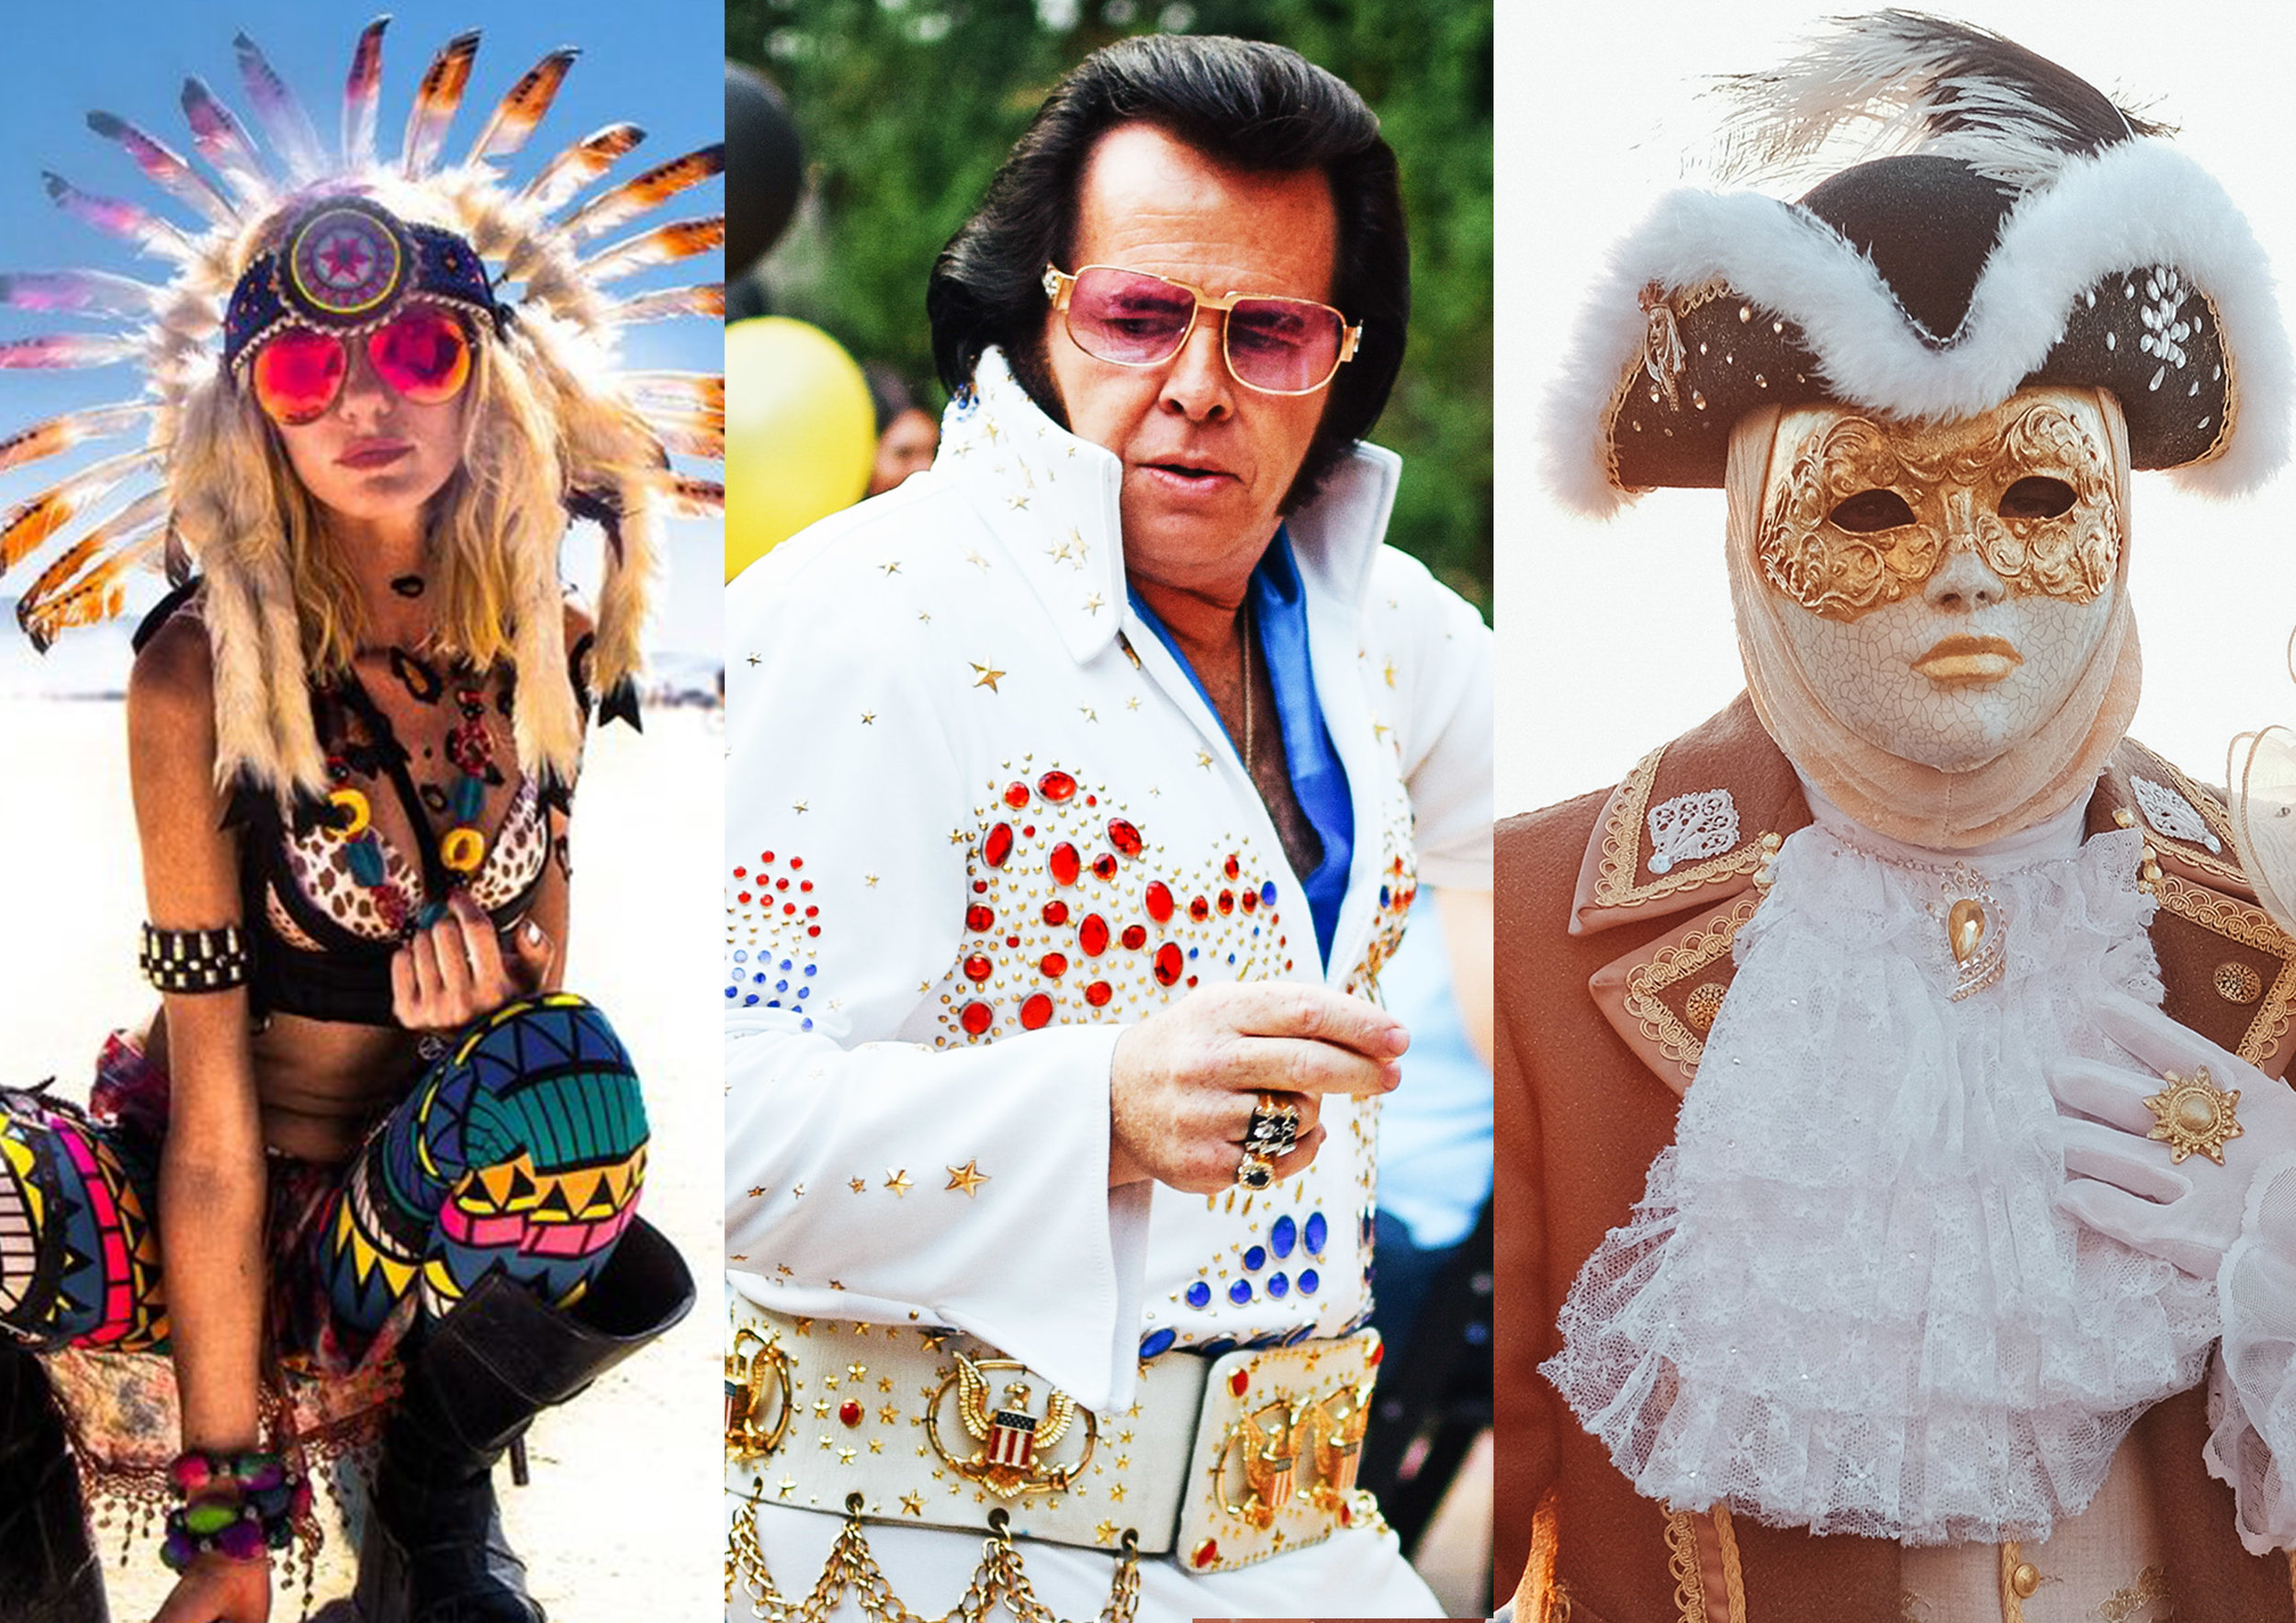 COSTUME RENTAL - More than 12,000 costumes to choose from in many different themes, and thousands of accessories.